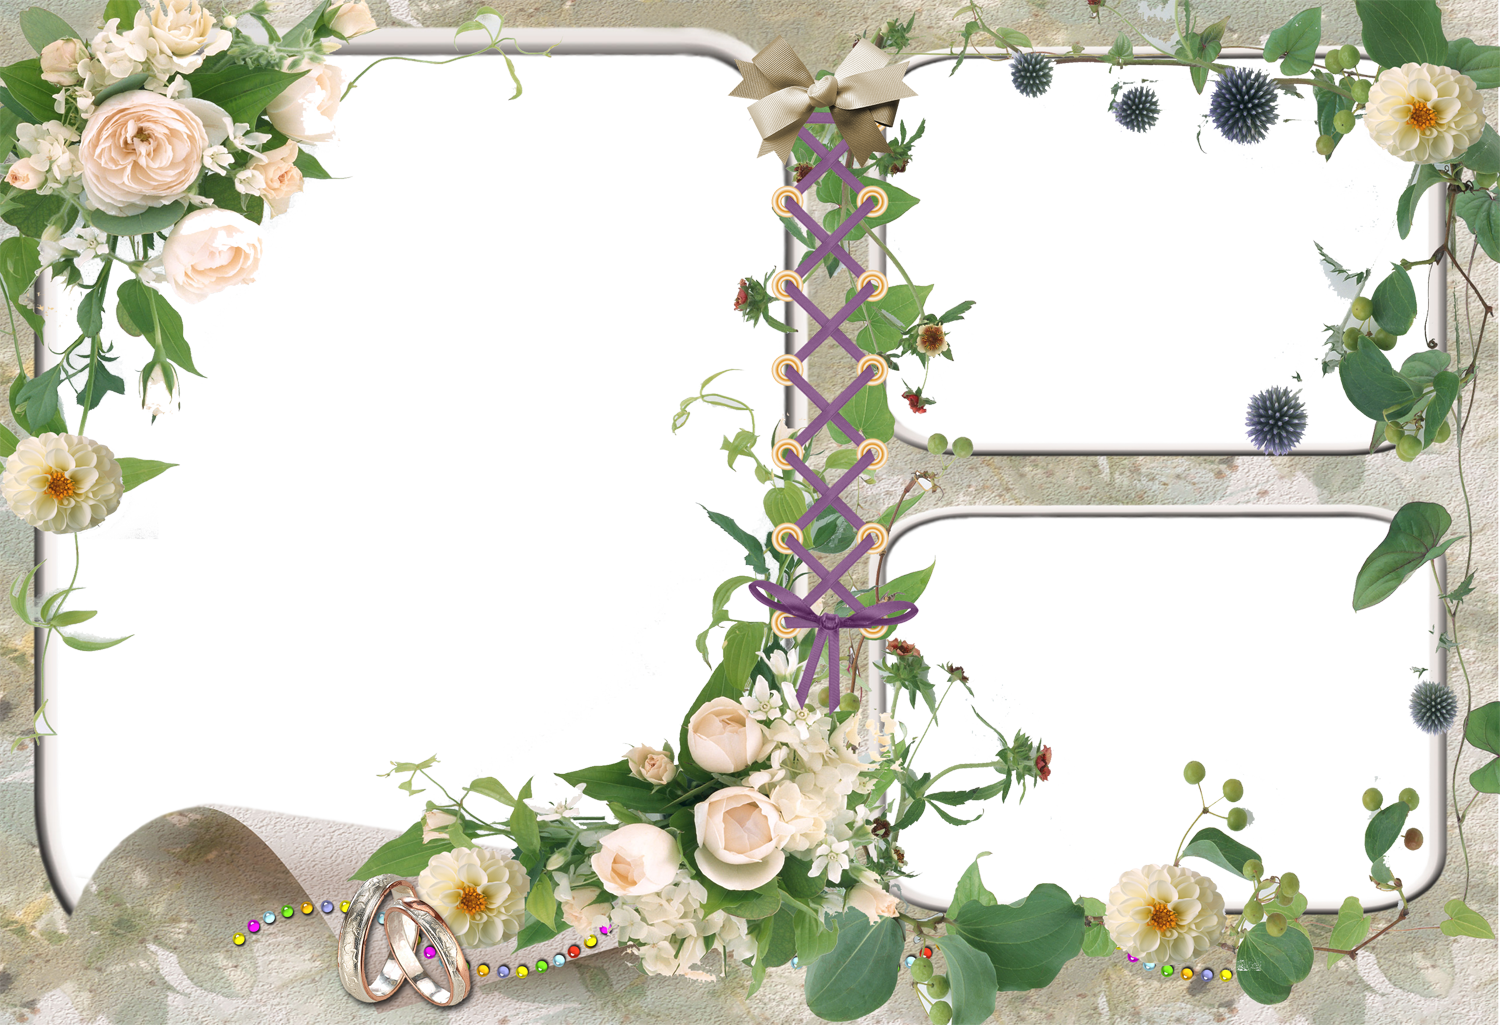 free wedding backgrounds frames free photoshop backgrounds high